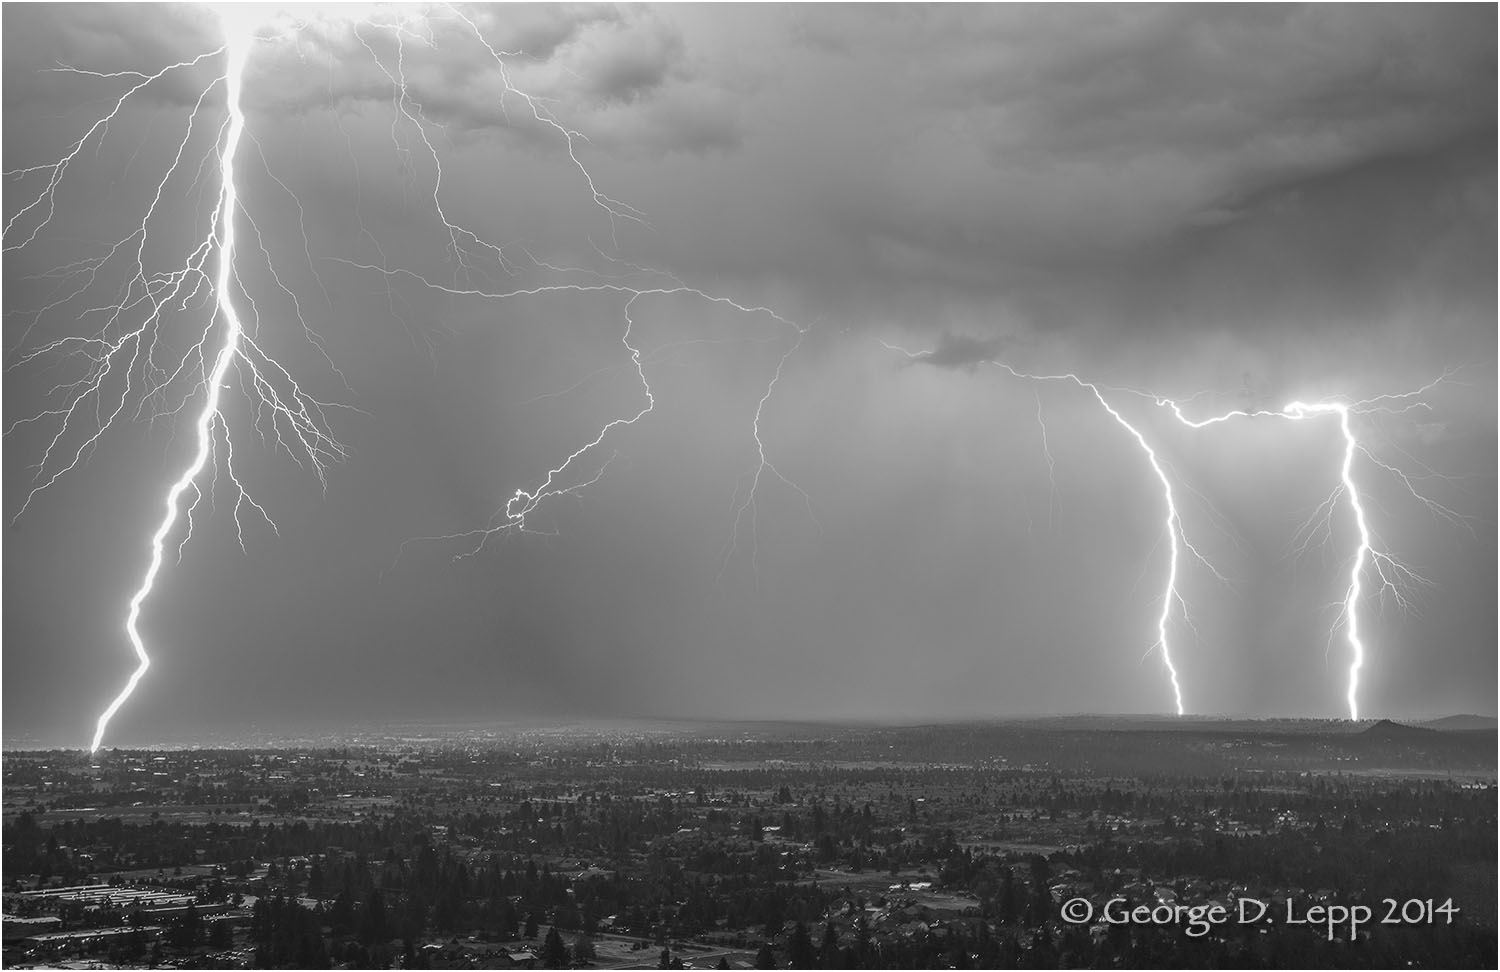 Lightning, Looking east from Pilot Butte, Bend, OR. © George D. Lepp 2014 LO-CE-BE-0136